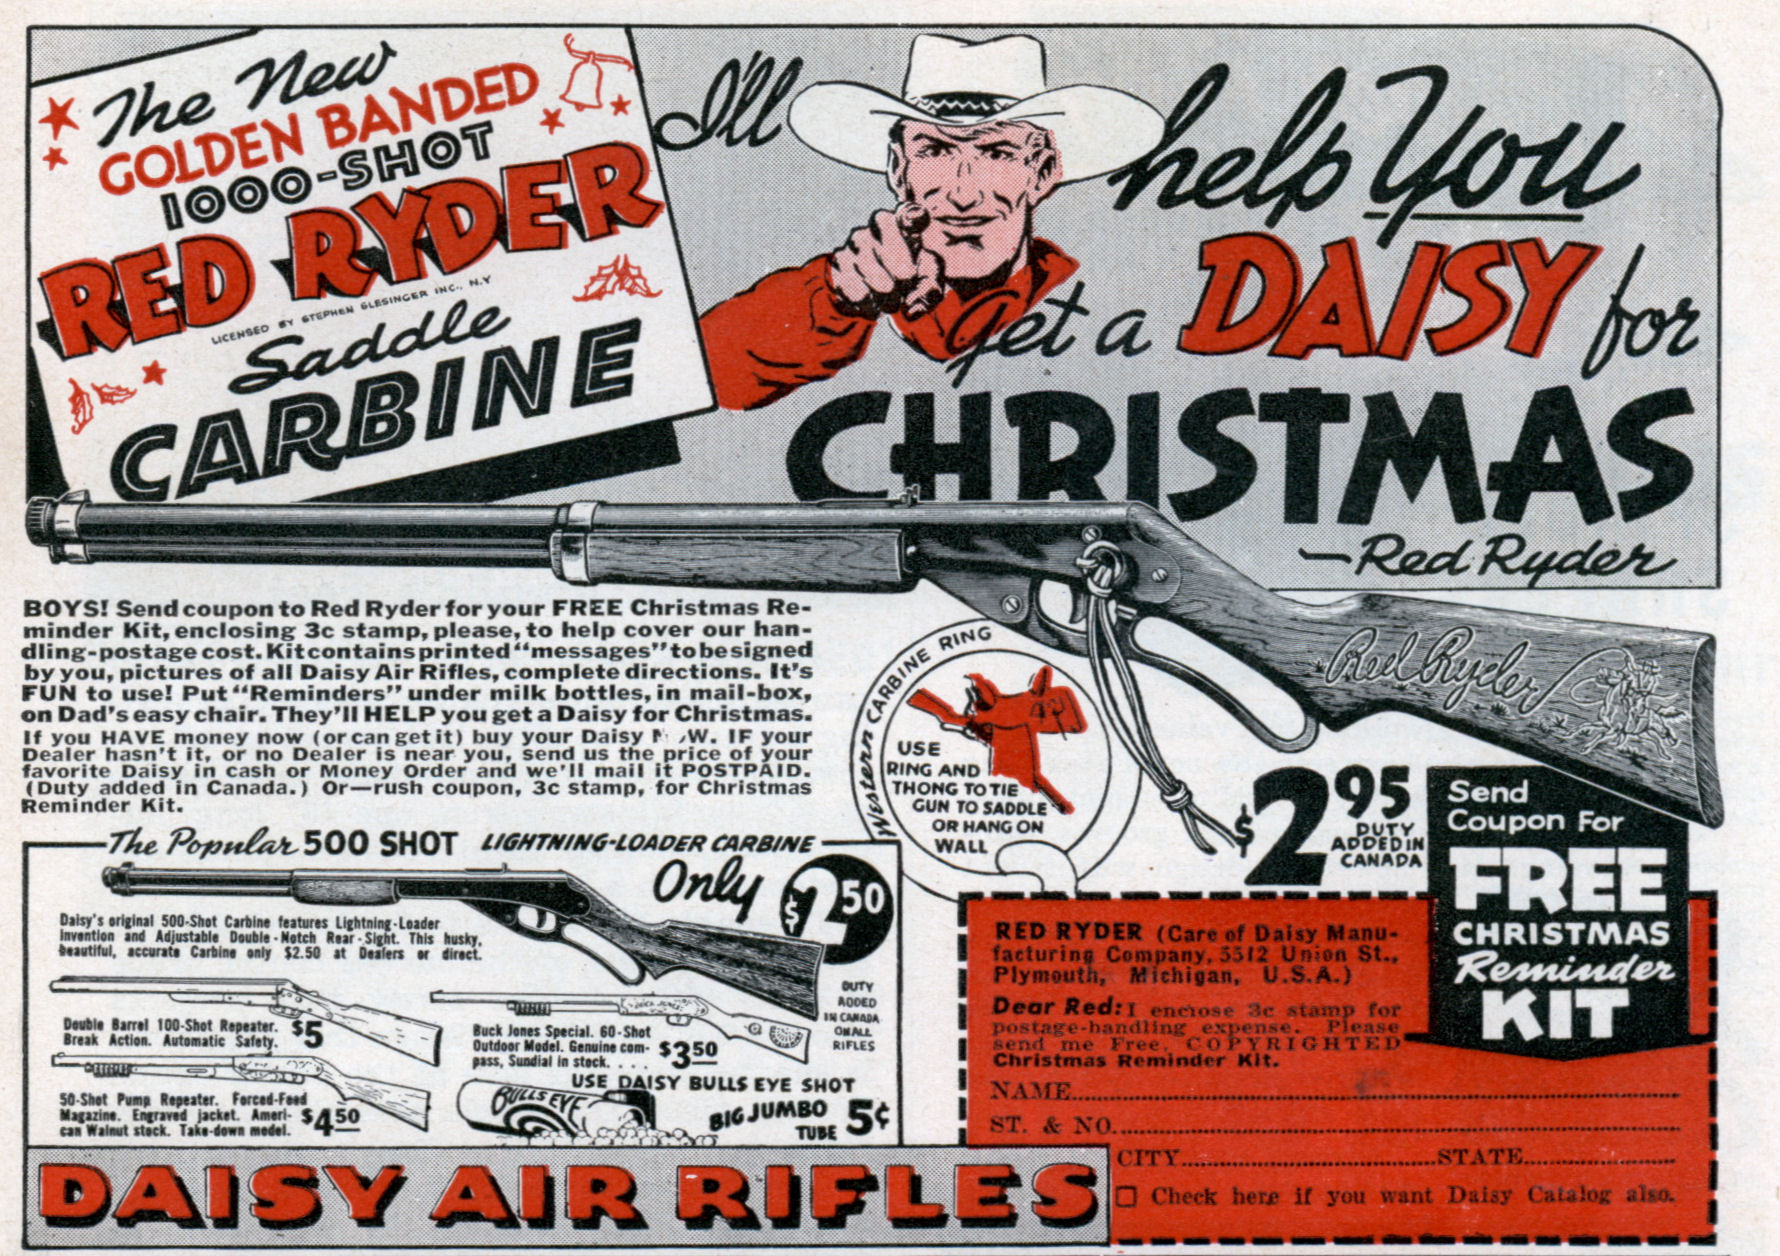 Daisy Air Rifles Red Ryder Golden Banded 1000-Shot Saddle Carbine - December 1940